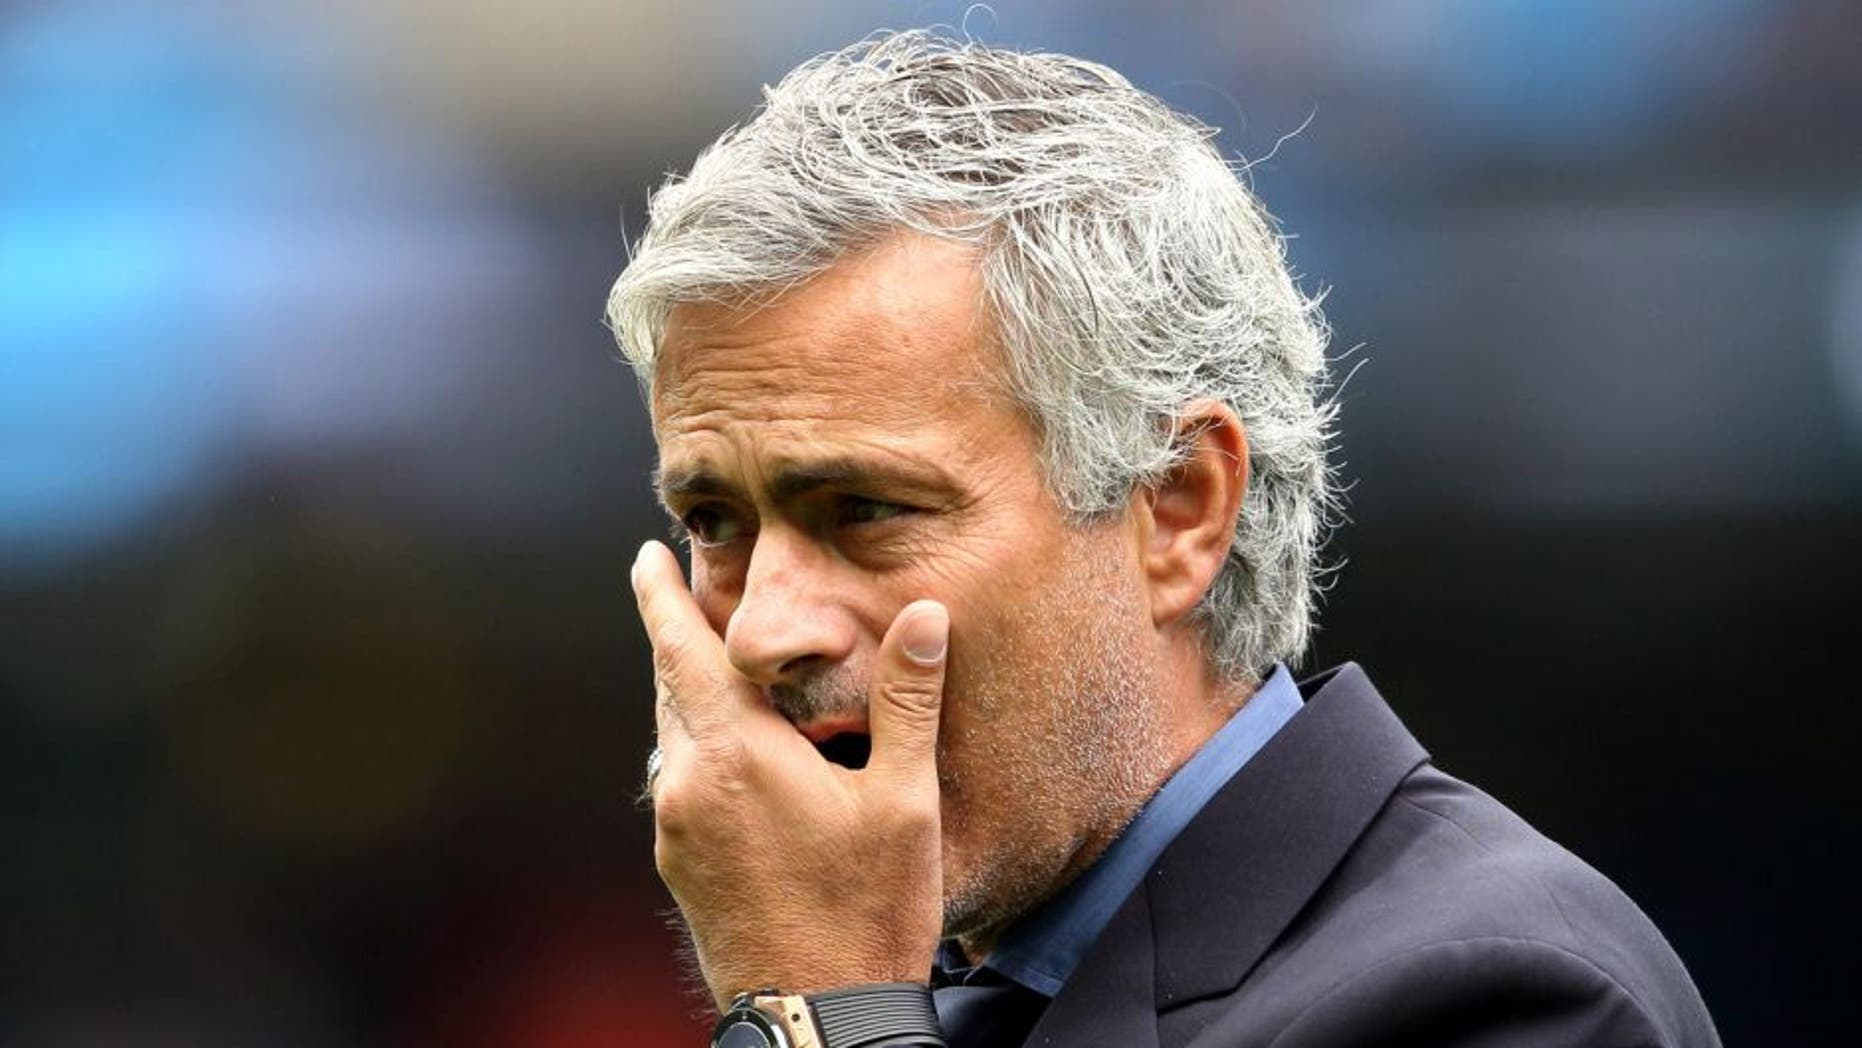 MANCHESTER, ENGLAND - AUGUST 16: Jose Mourinho the head coach / manager of Chelsea during the Barclays Premier League match between Manchester City and Chelsea at the Etihad Stadium on August 16, 2015 in Manchester, England. (Photo by Matthew Ashton - AMA/Getty Images)